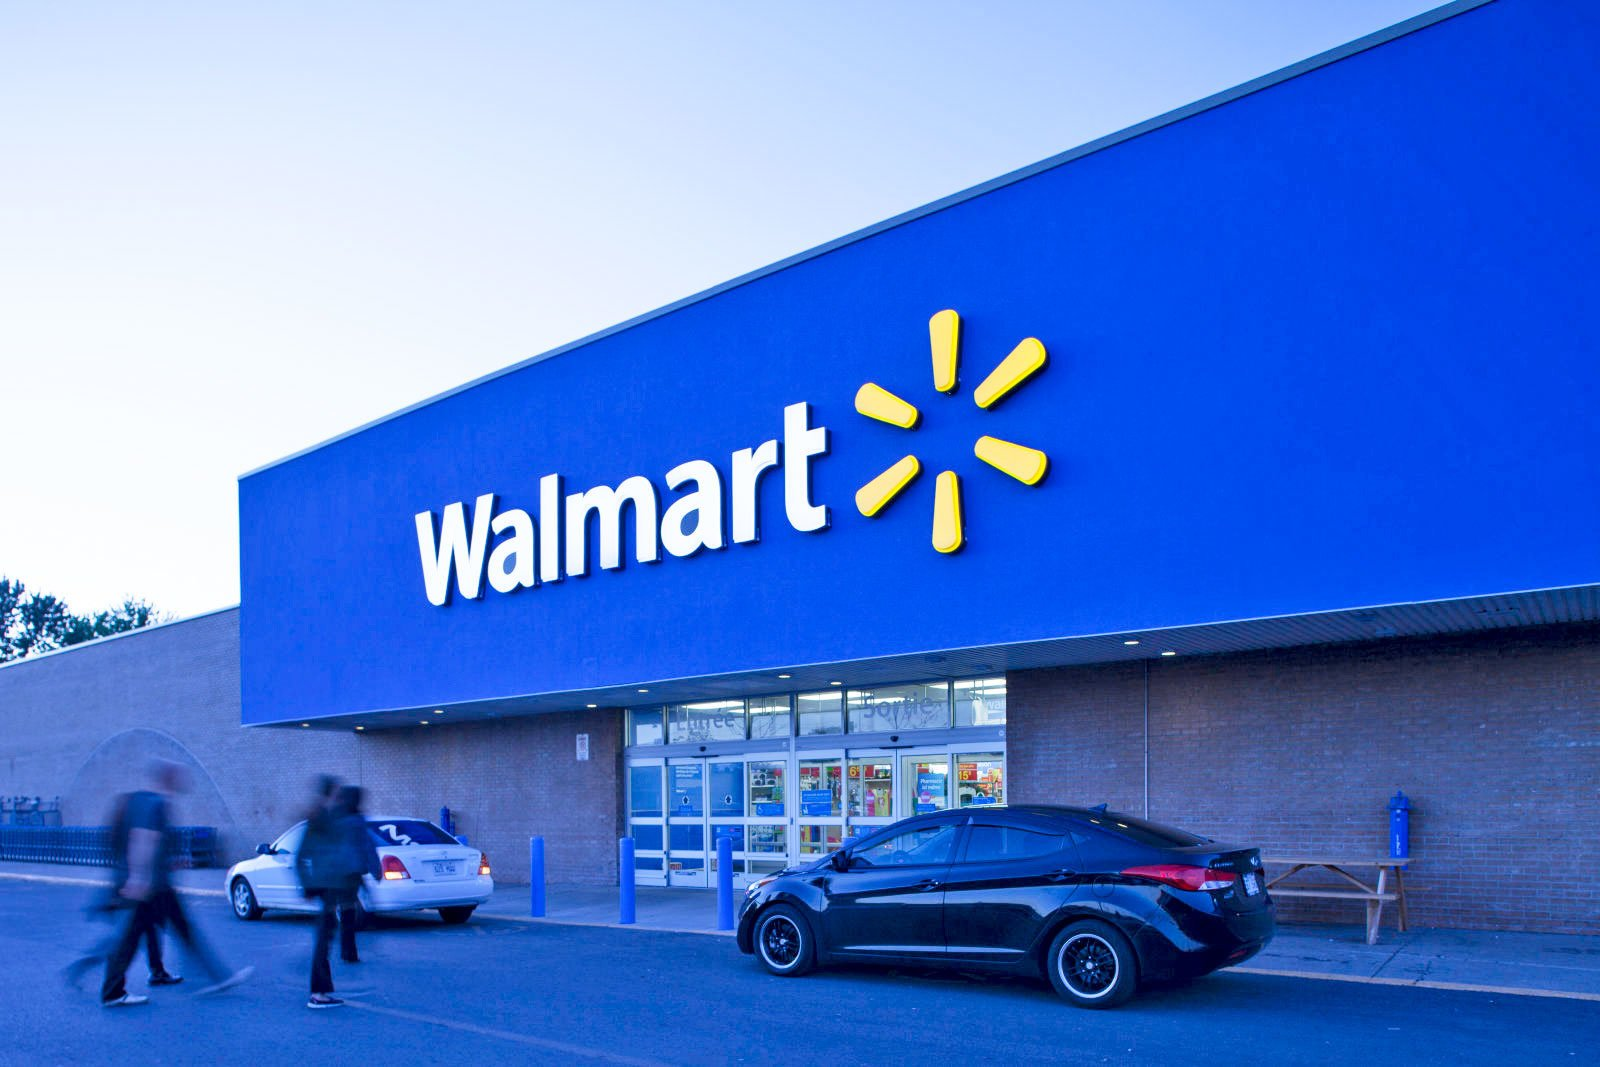 walmart.jpeg?resize=412,232 - Watch Out For This Prank If You Are Planning To Visit Walmart